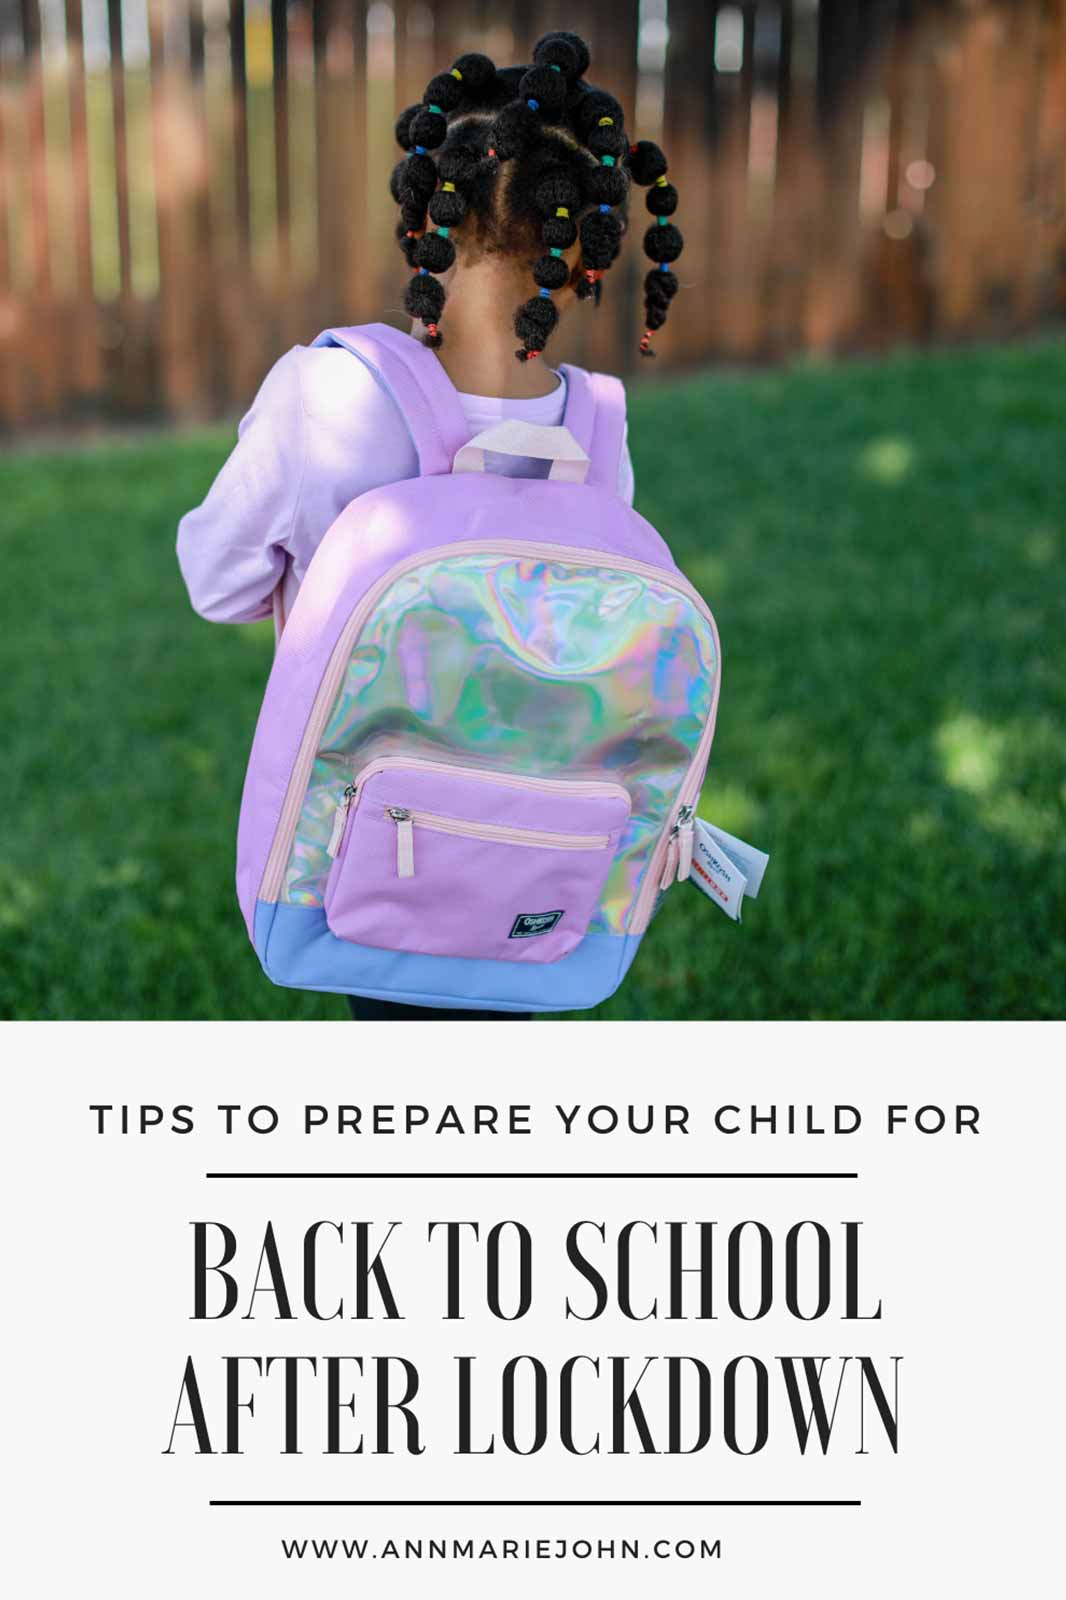 How to prepare your child for getting back to school after lockdown.